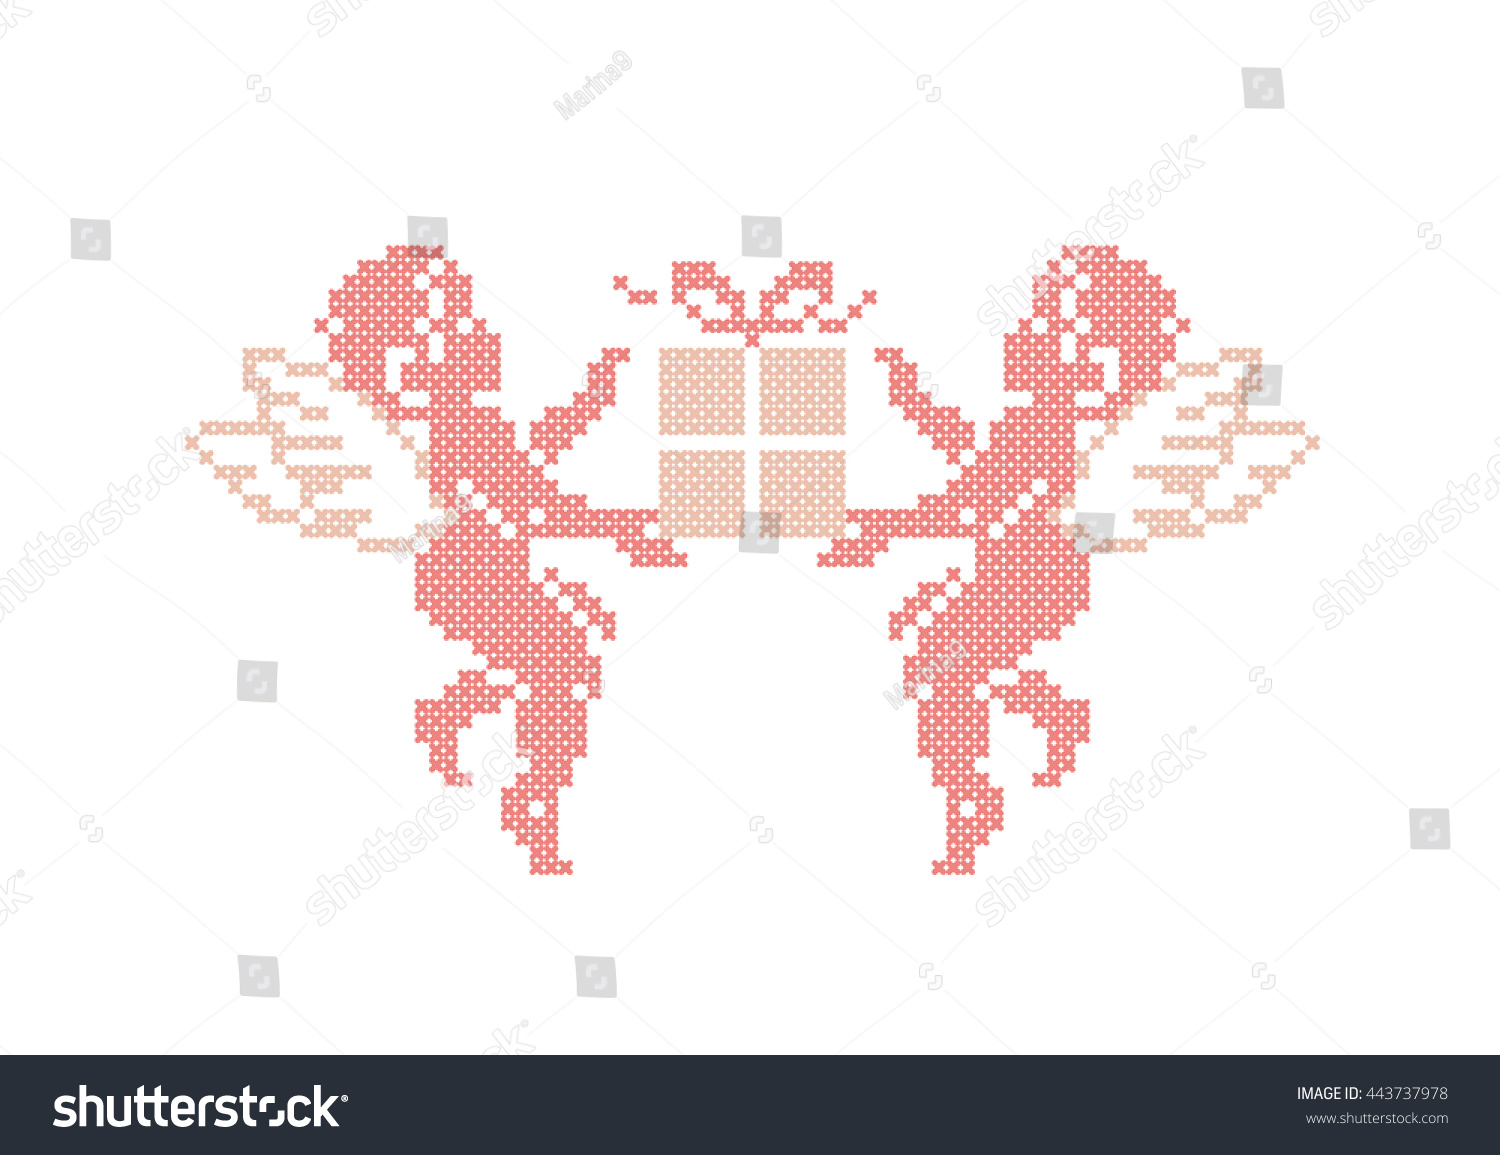 Happy Birthday! Cute Cupids With Gift Box. Cupid Angels. Cross Stitch. Vector Element Embroidery. - 443737978 : Shutterstock